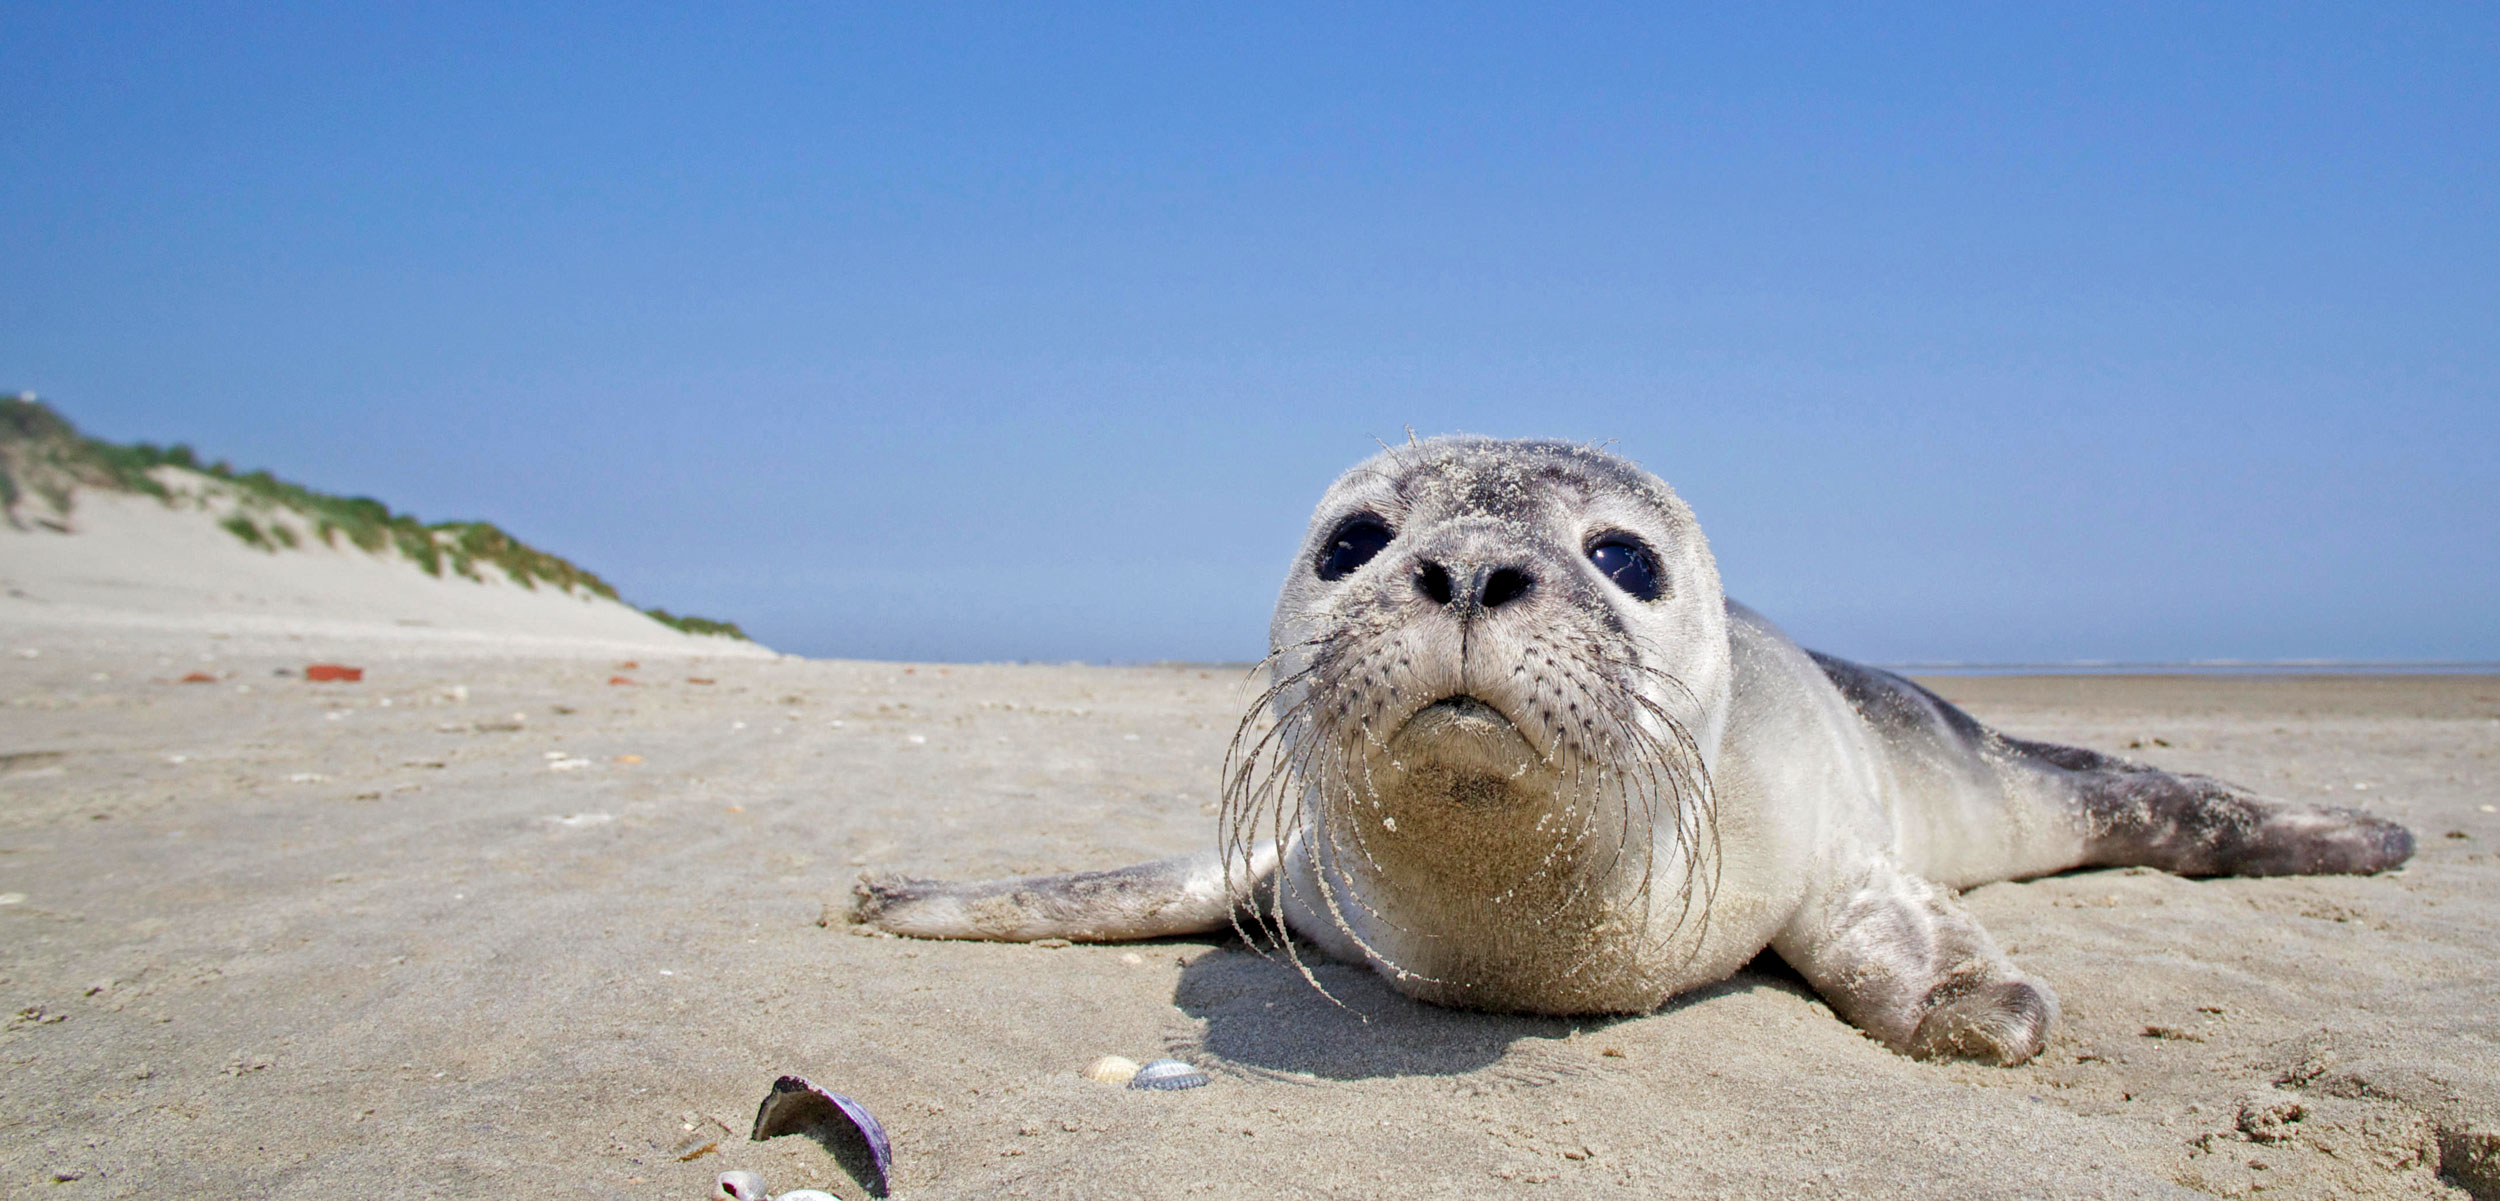 A young Harbour Seal (Phoca vitulina) on the beach of Rottumerplaat